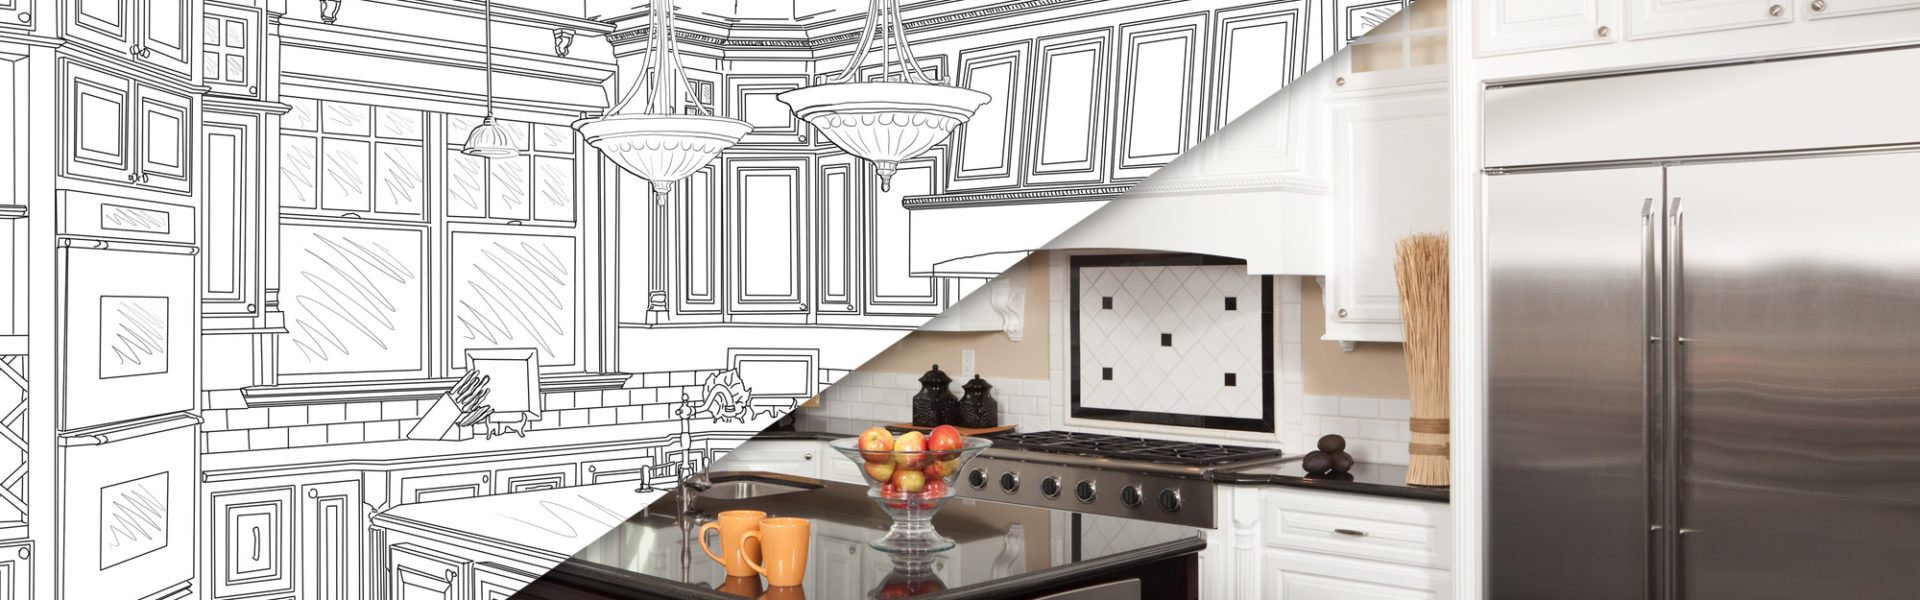 All About the Bathroom Kitchen Remodeling in San Diego